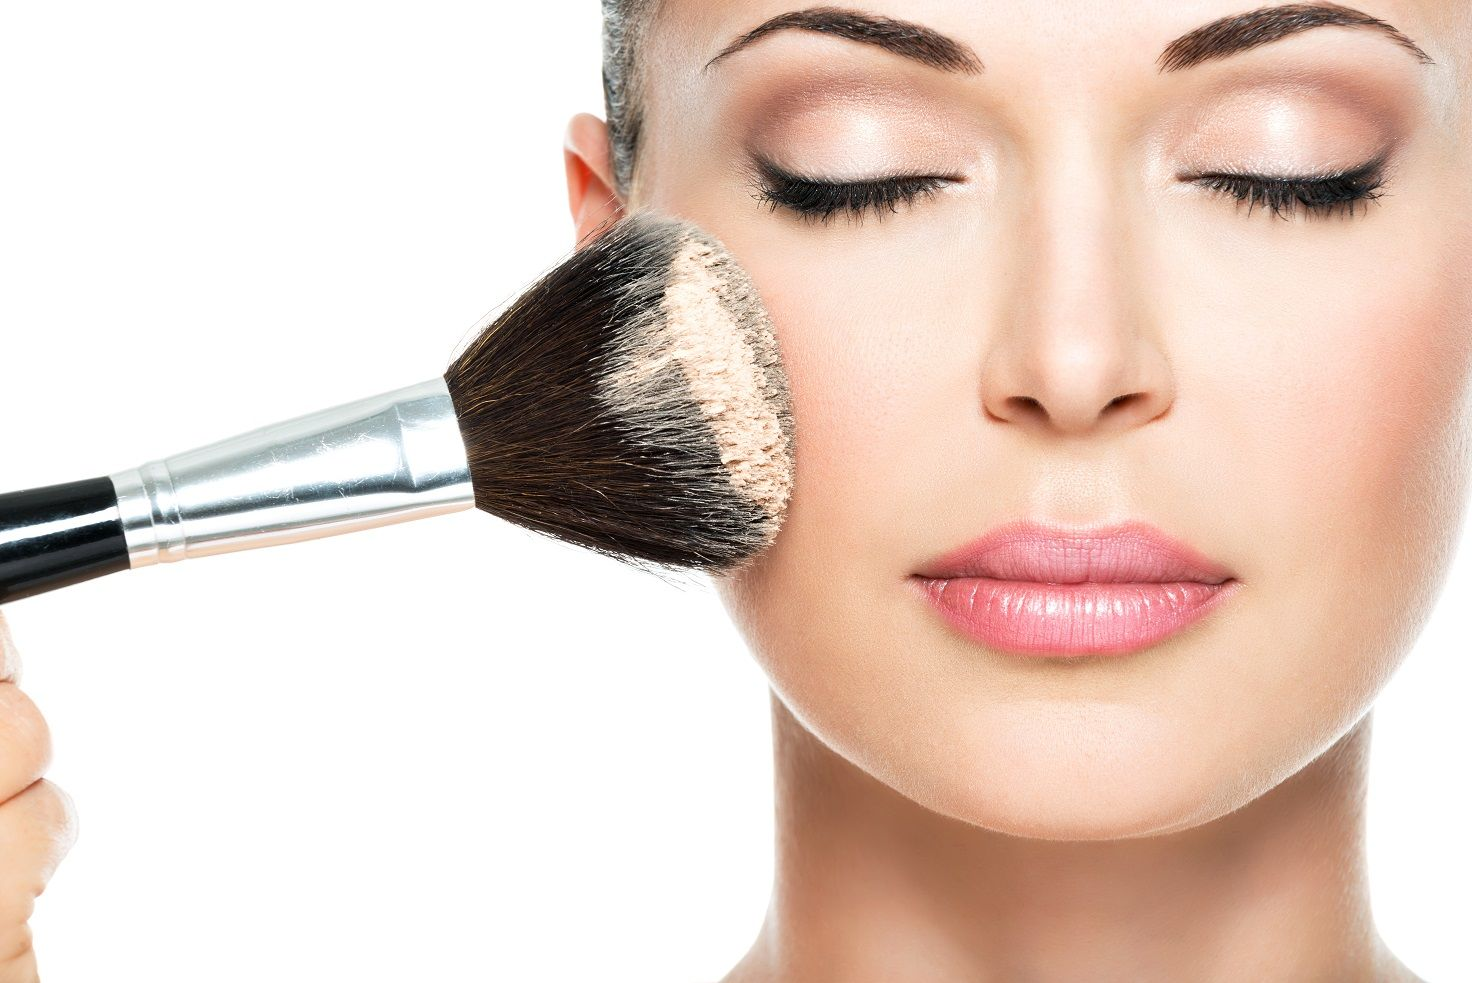 Baking, strobing e contouring? Le ultime novità make up 2015